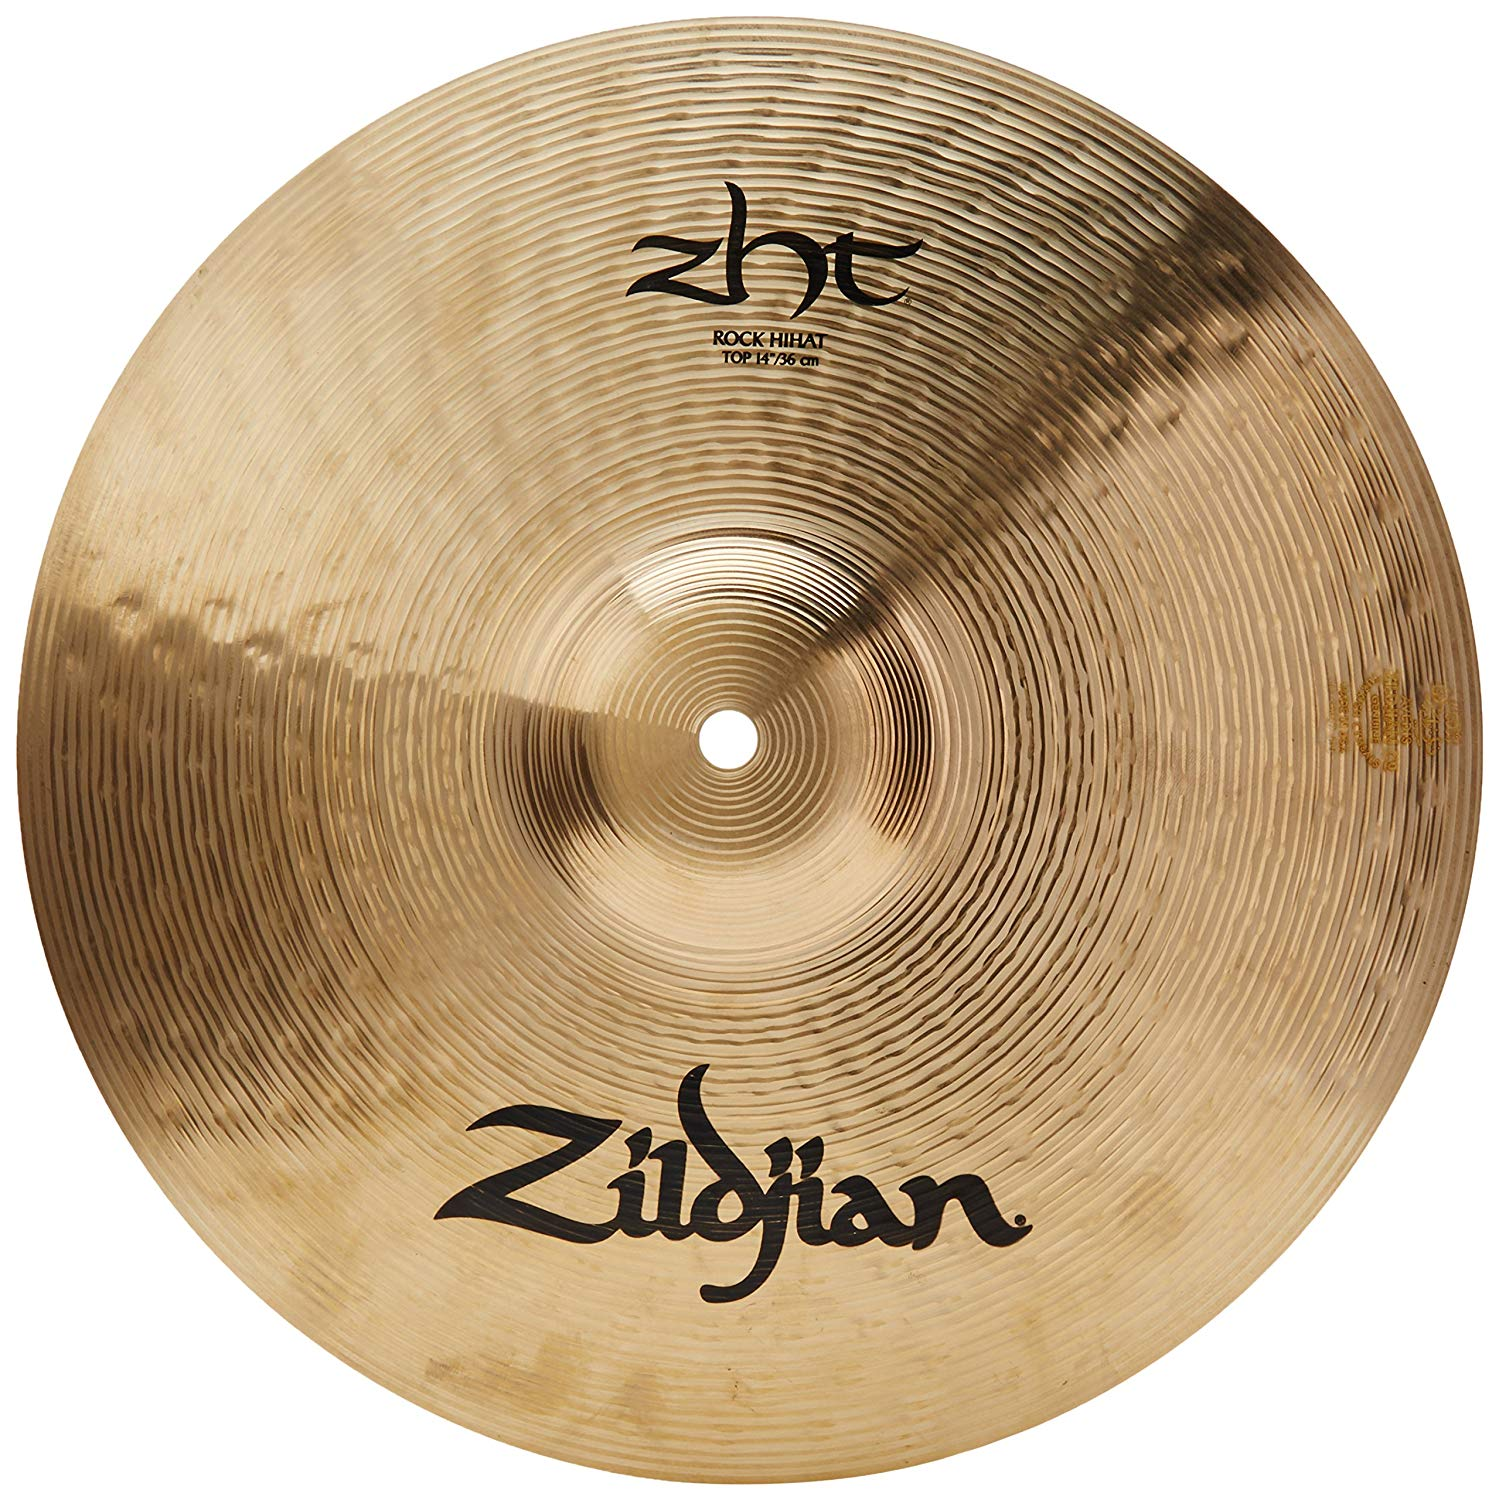 faa3299f19c Zildjian ZHT Rock Hi-Hat Top 14 in.